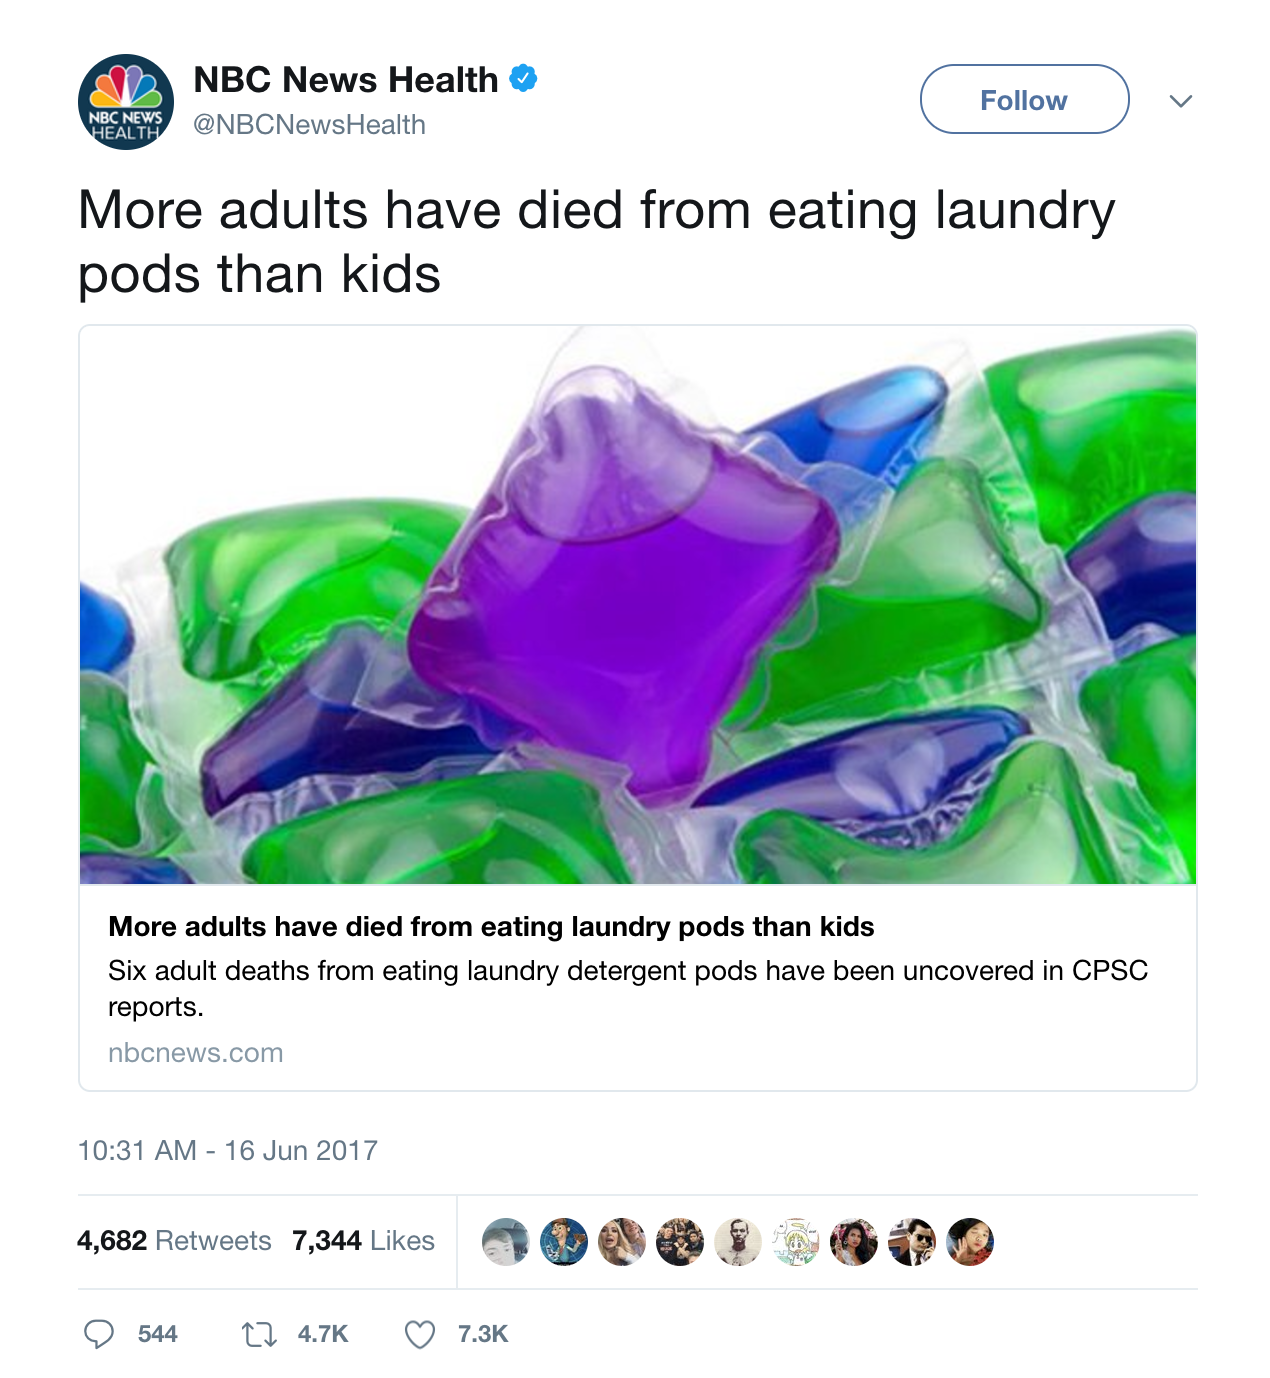 Pods Quote Nbc News Health Tweets Laundry Pod Statistics  Eating Tide Pods